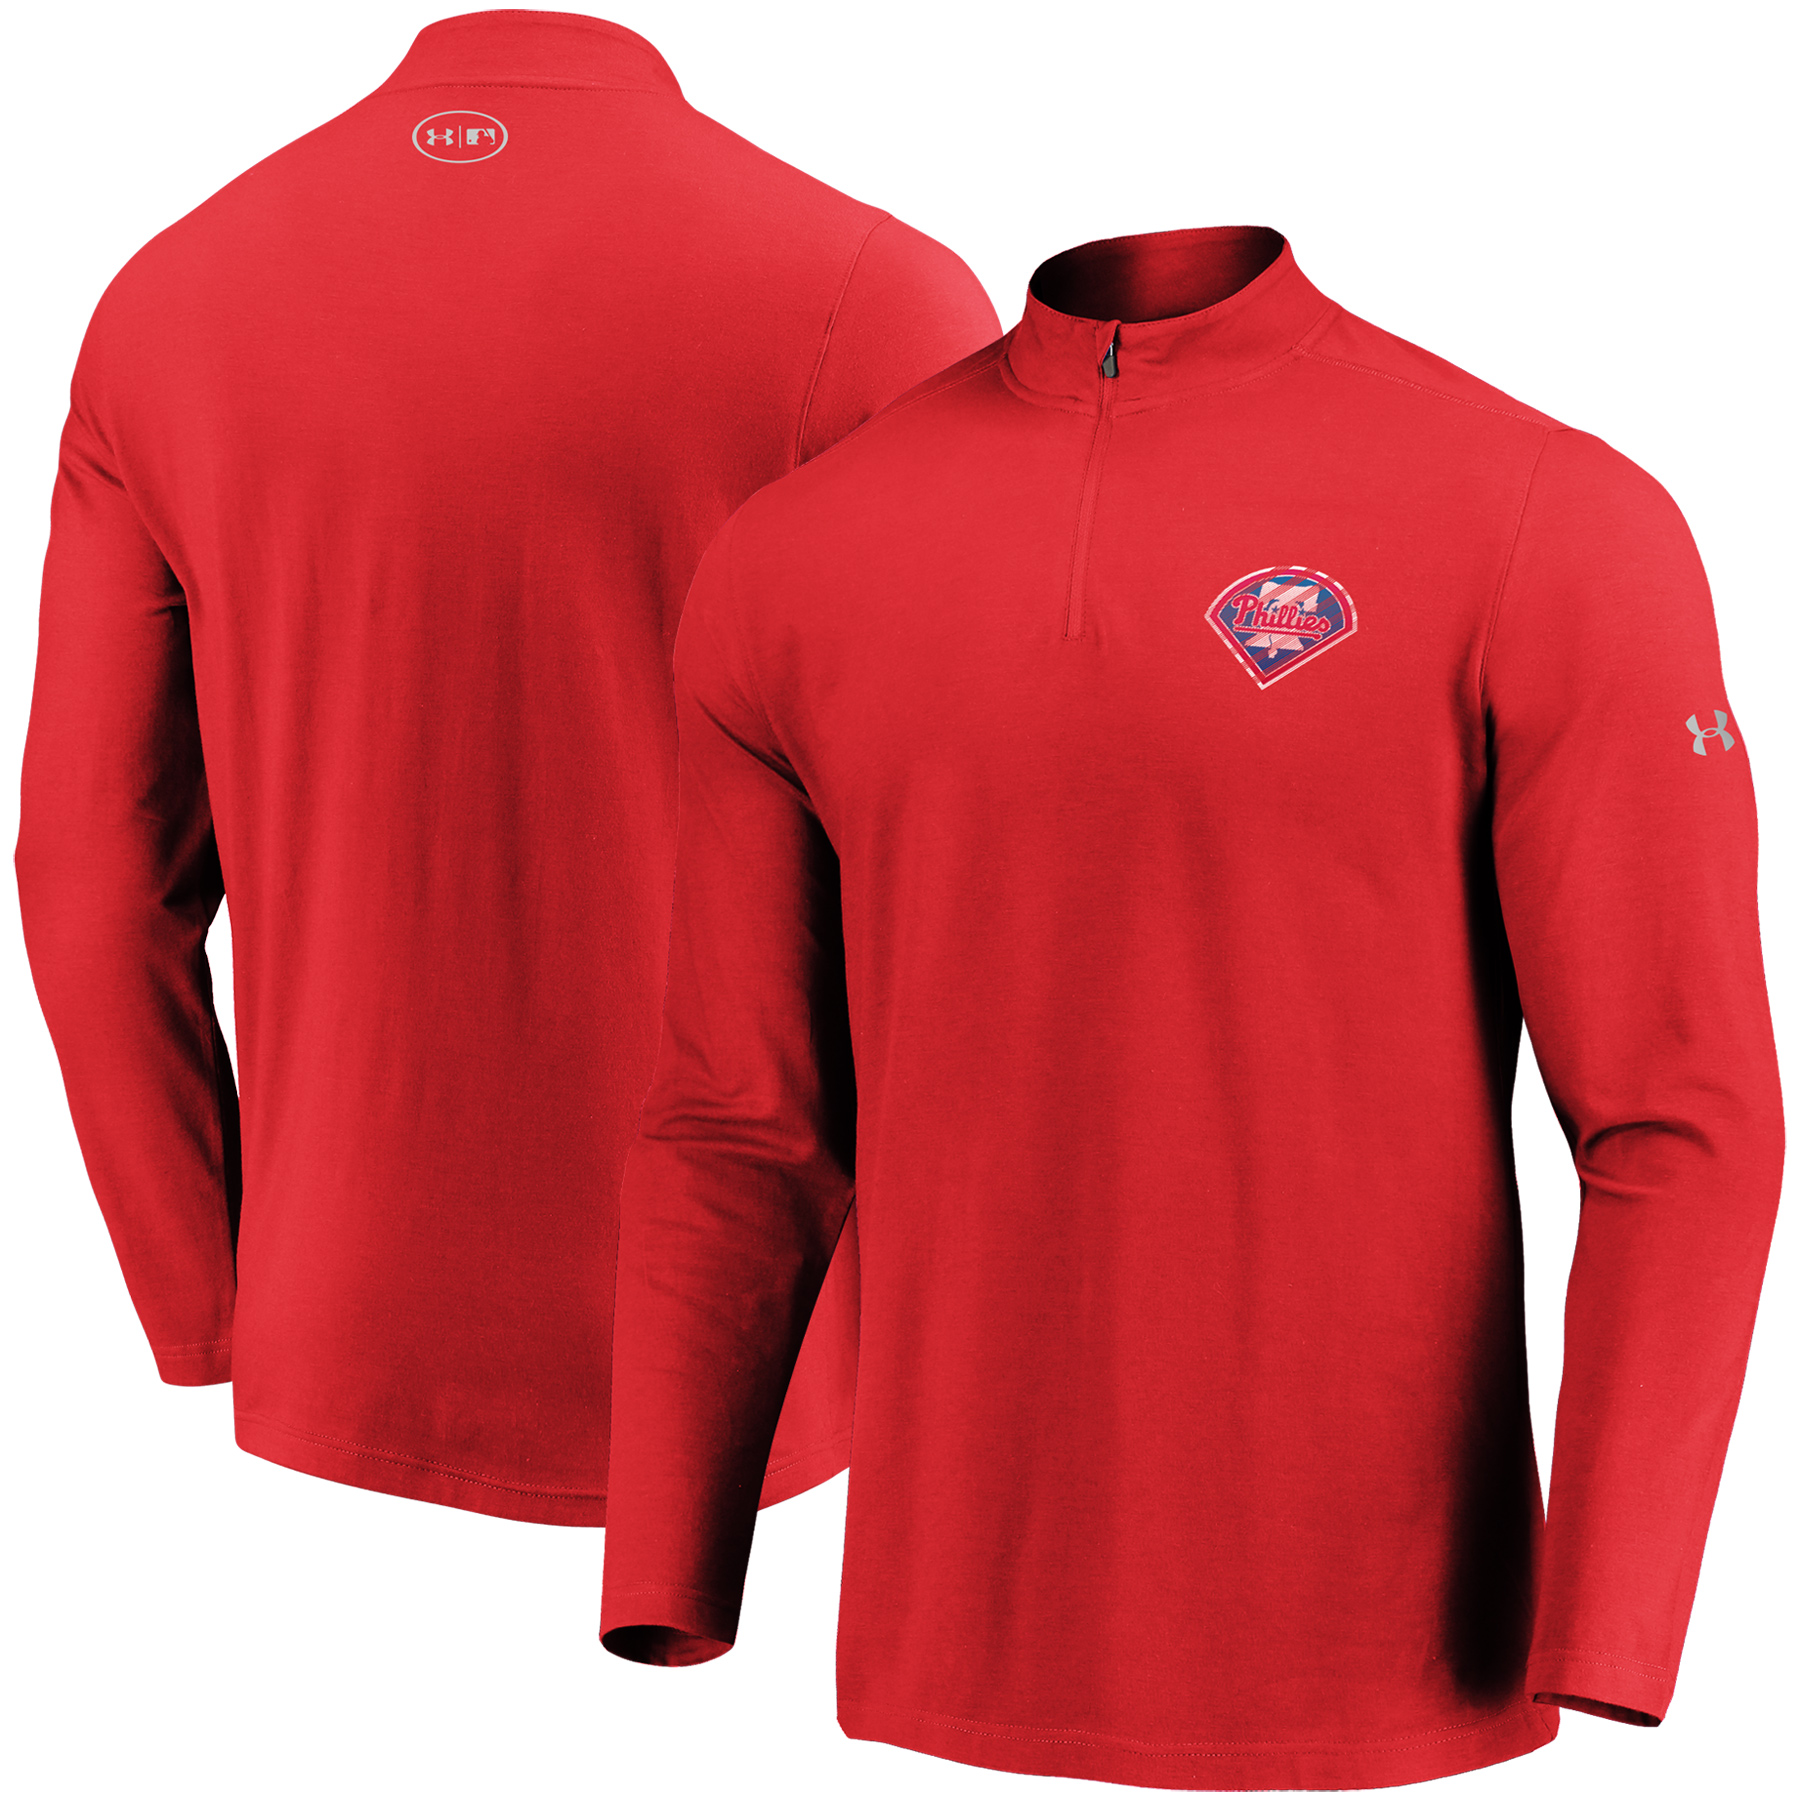 Philadelphia Phillies Under Armour Passion Alternate Left Chest 1/4-Zip Jacket - Red